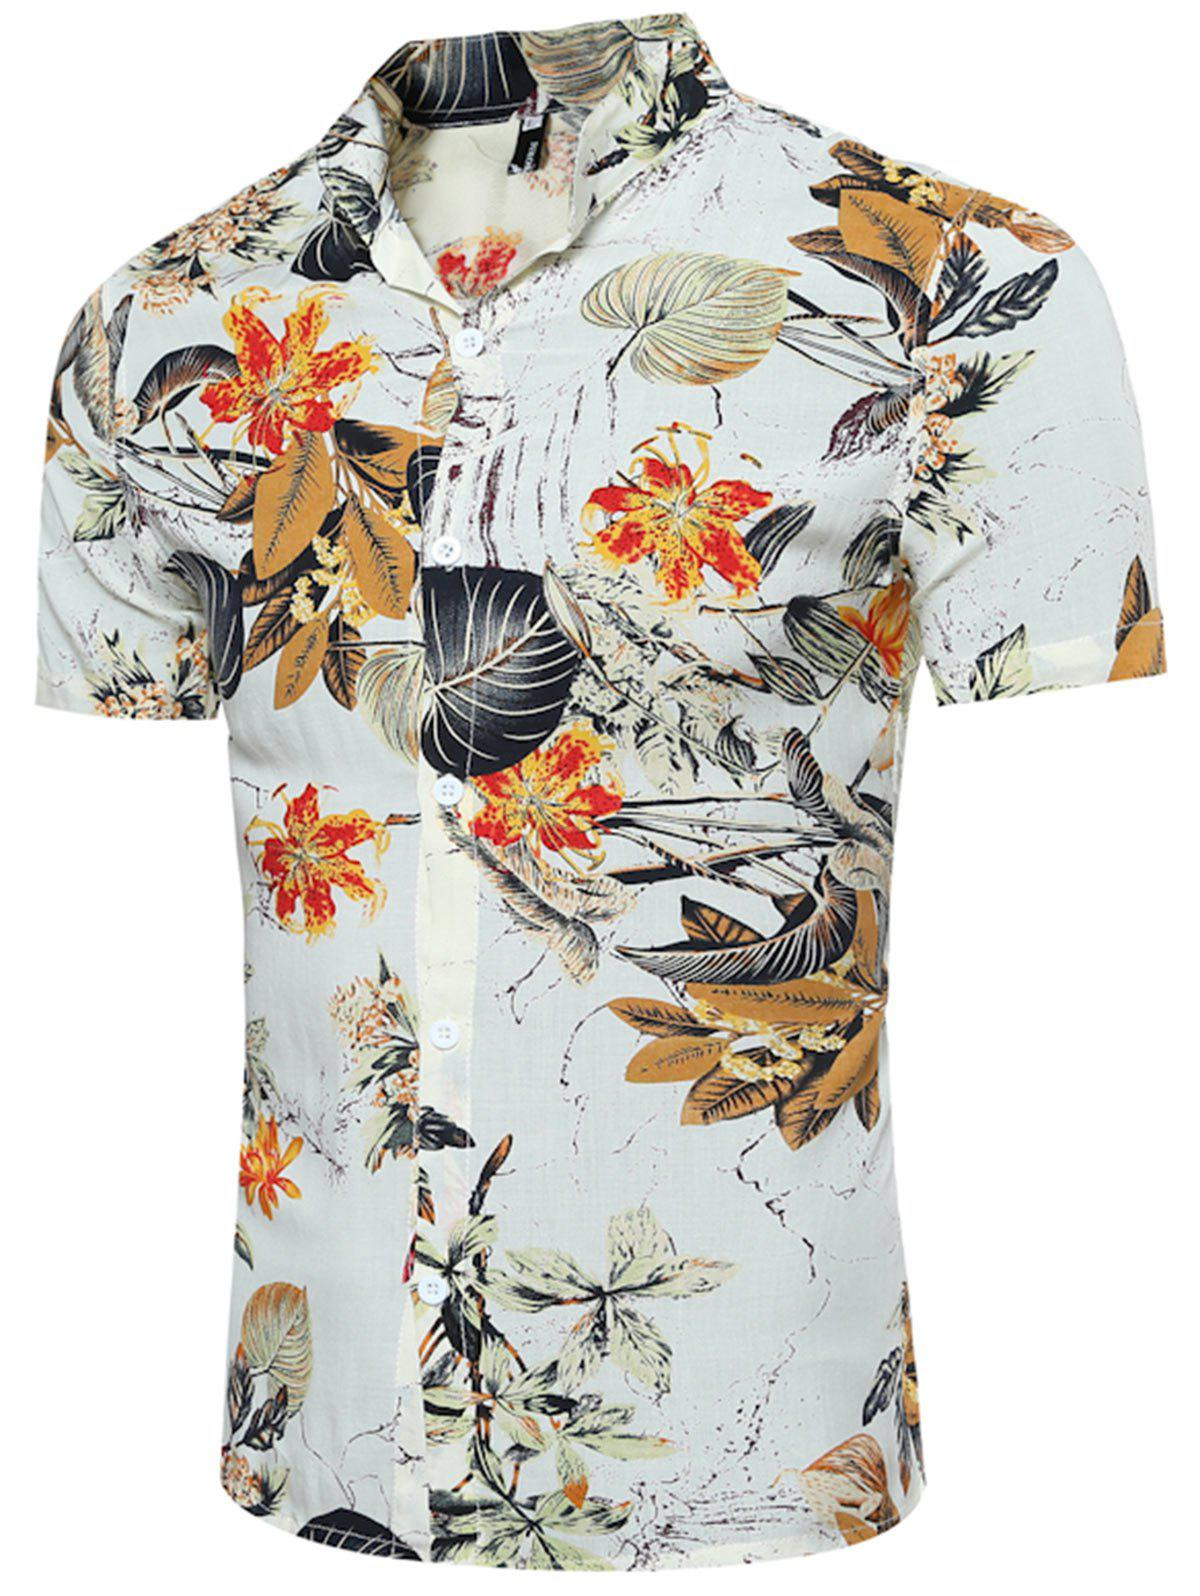 Breathable Leave and Florals 3D Print Shirt - COLORMIX 2XL